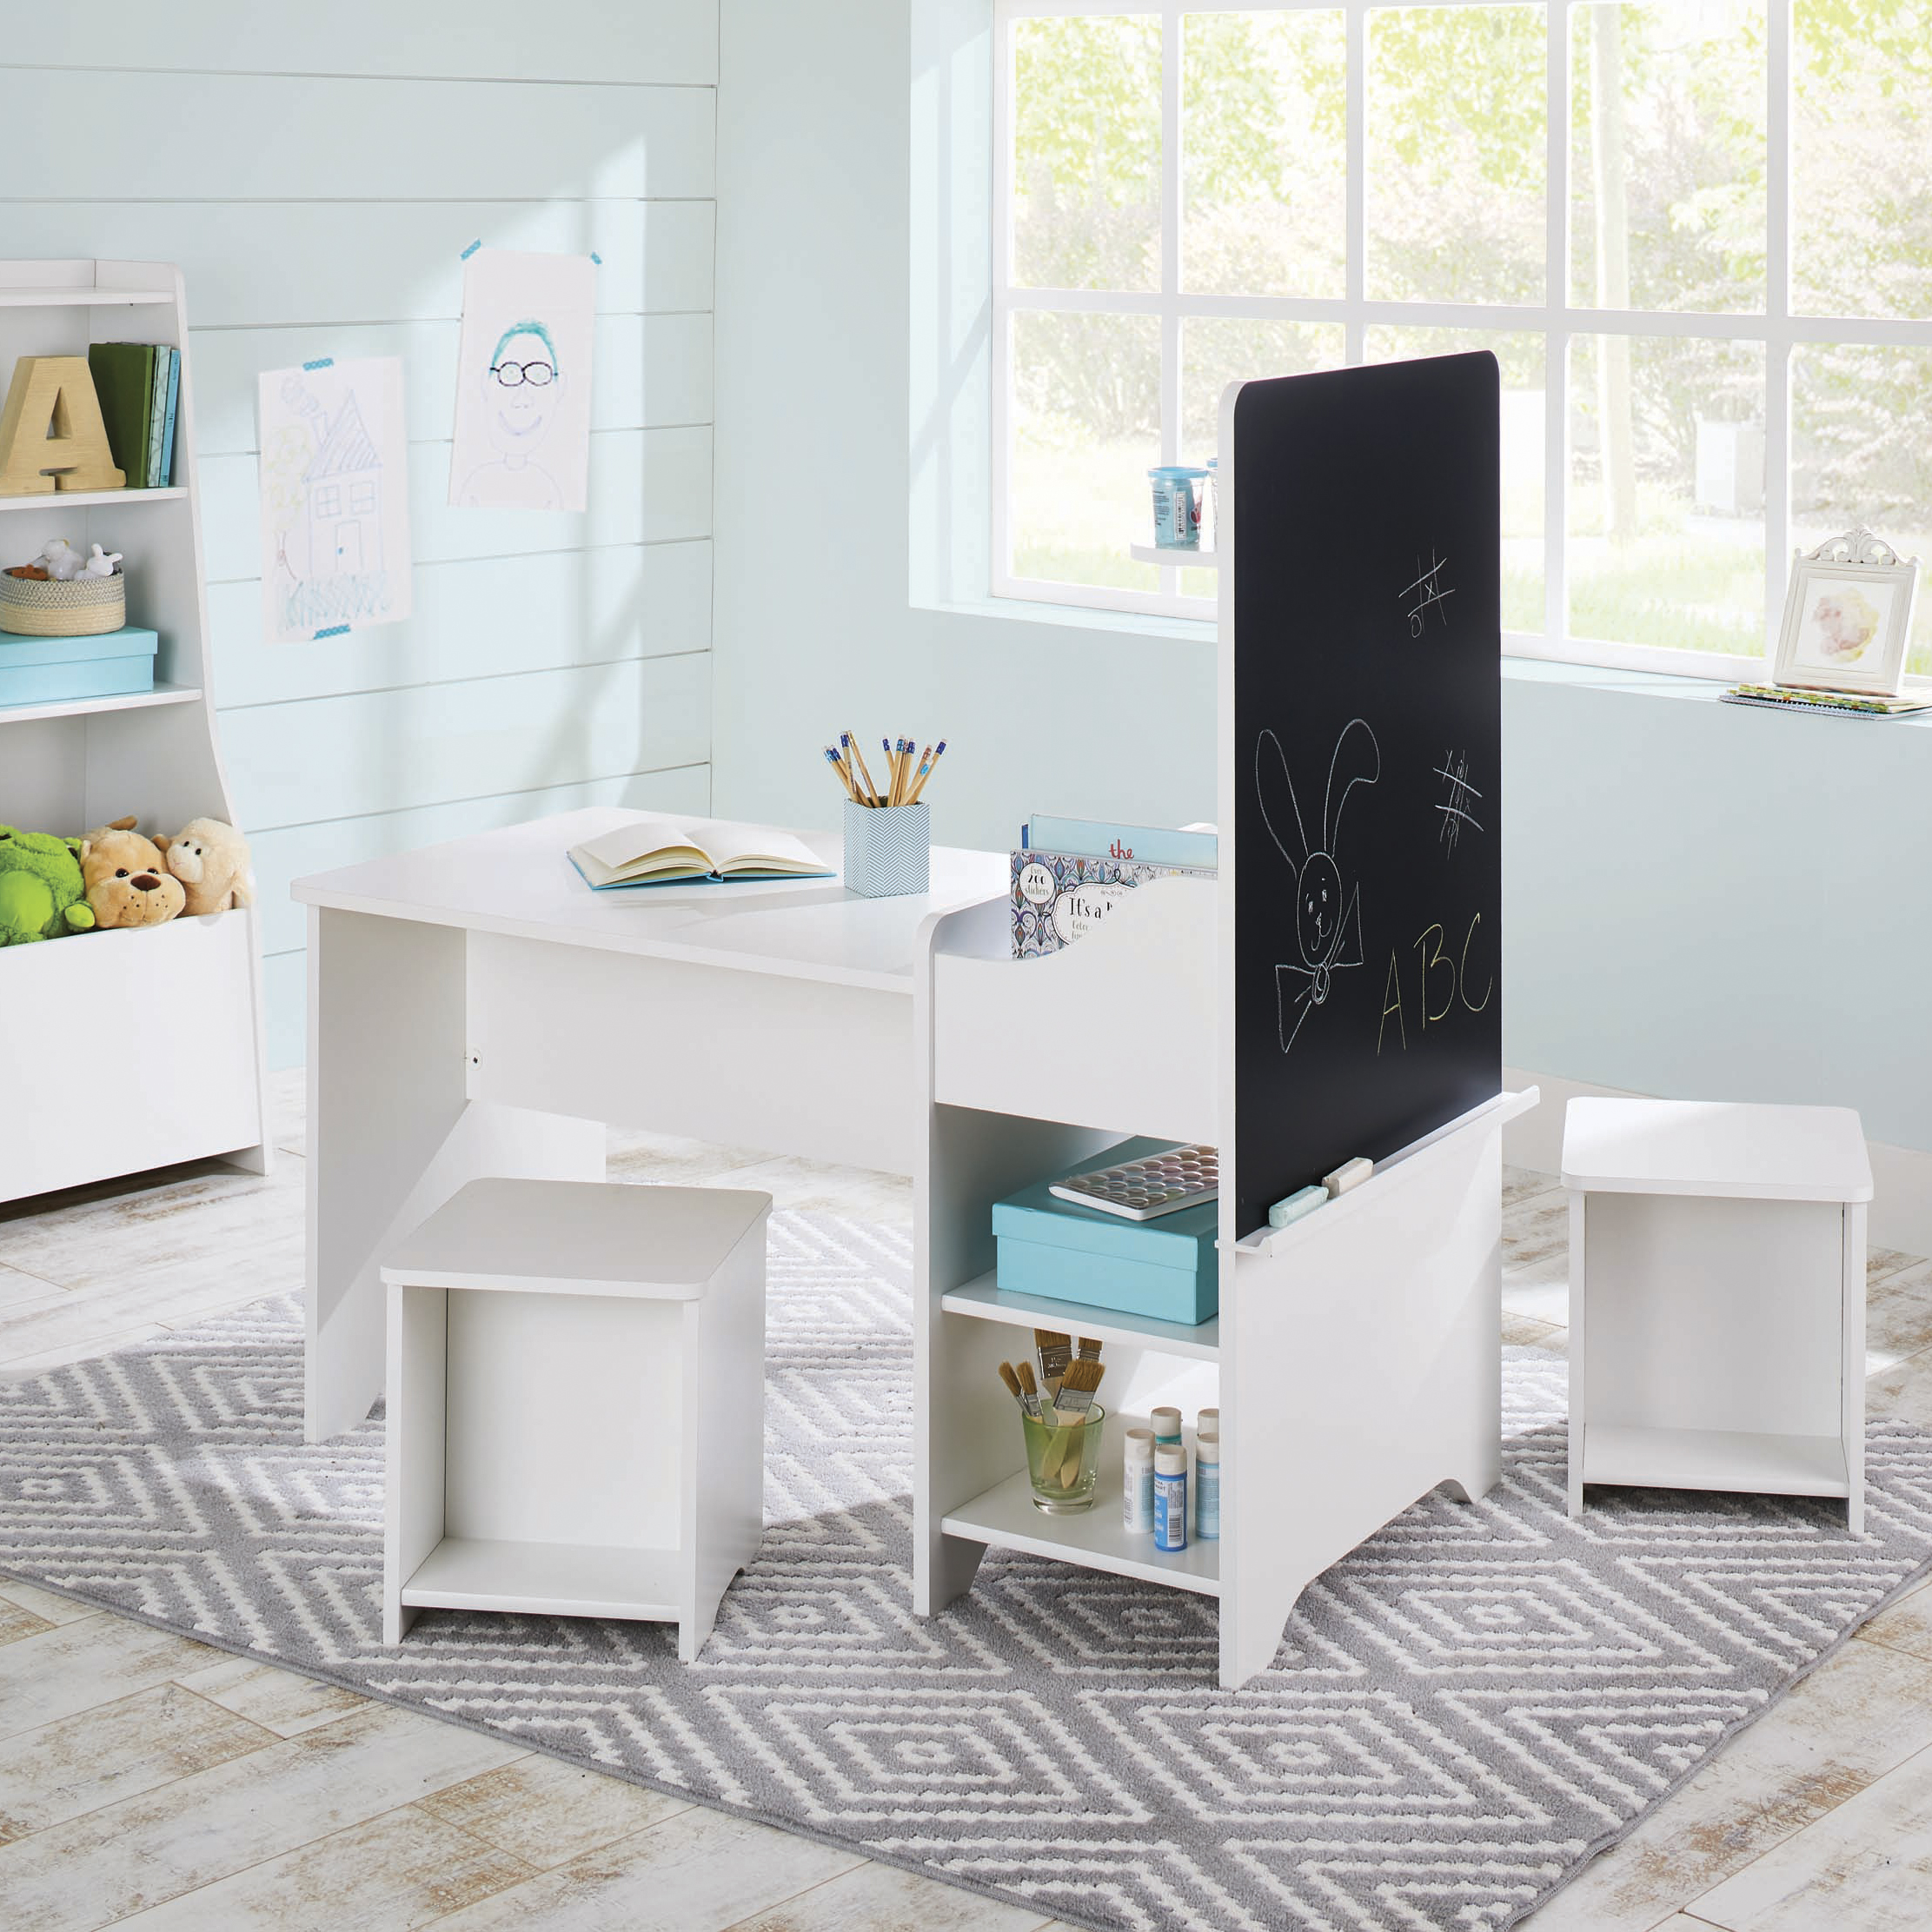 Better Homes & Gardens Cartwheel Activity Center with Chalkboard, White Finish